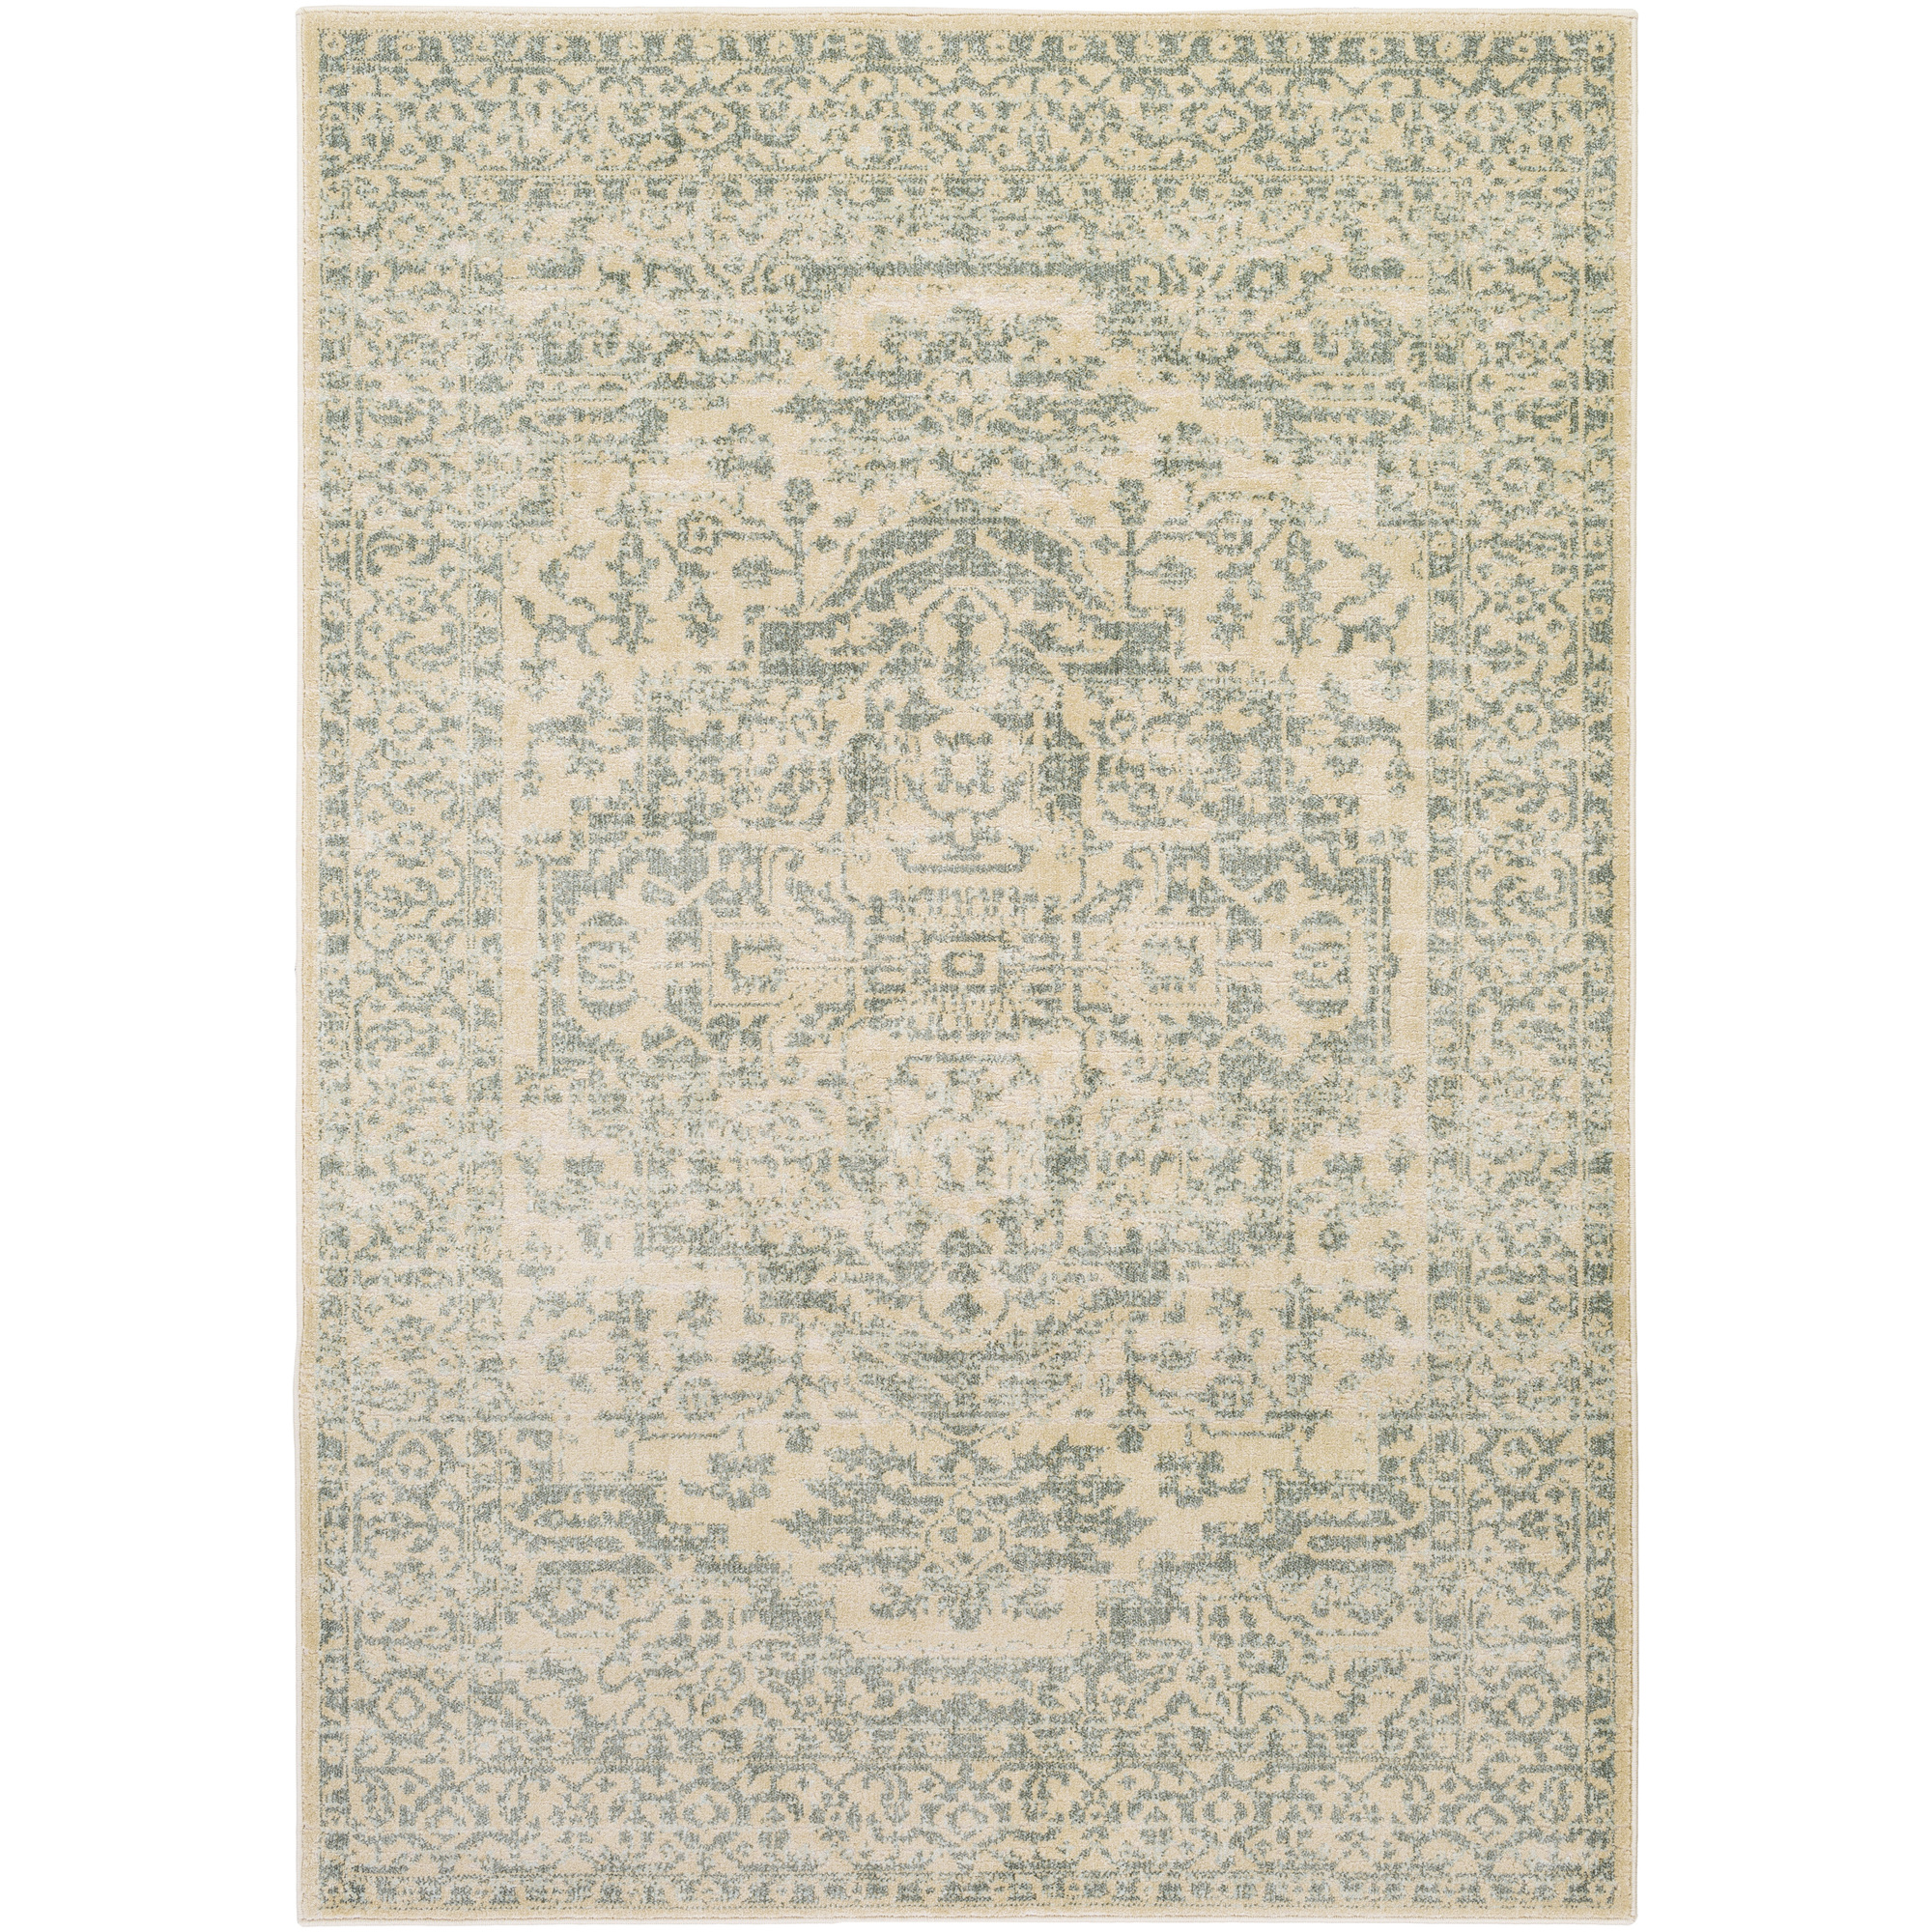 "Art of Knot Othela 5'3"" x 7'3"" Rectangular Area Rug"